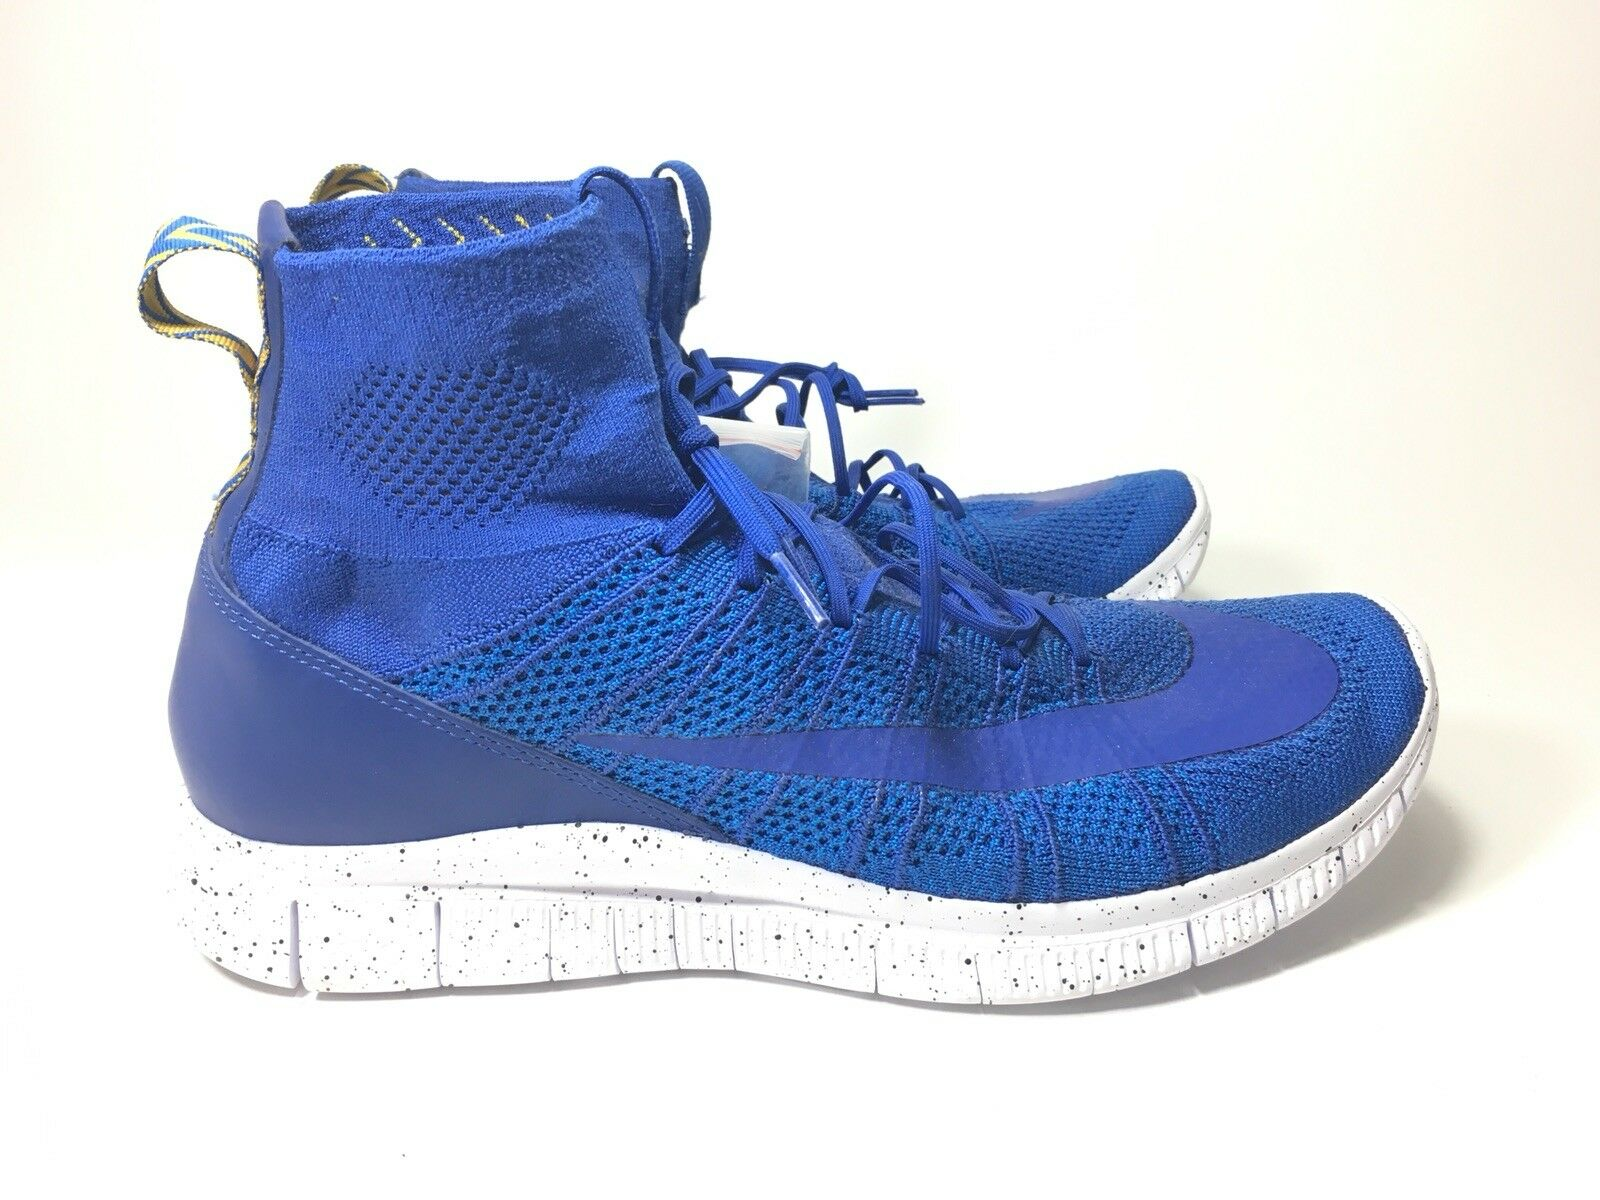 Nike Free Flyknit Mercurial Game Royal bluee 805554 400 Men's Size 10 Superfly Cr